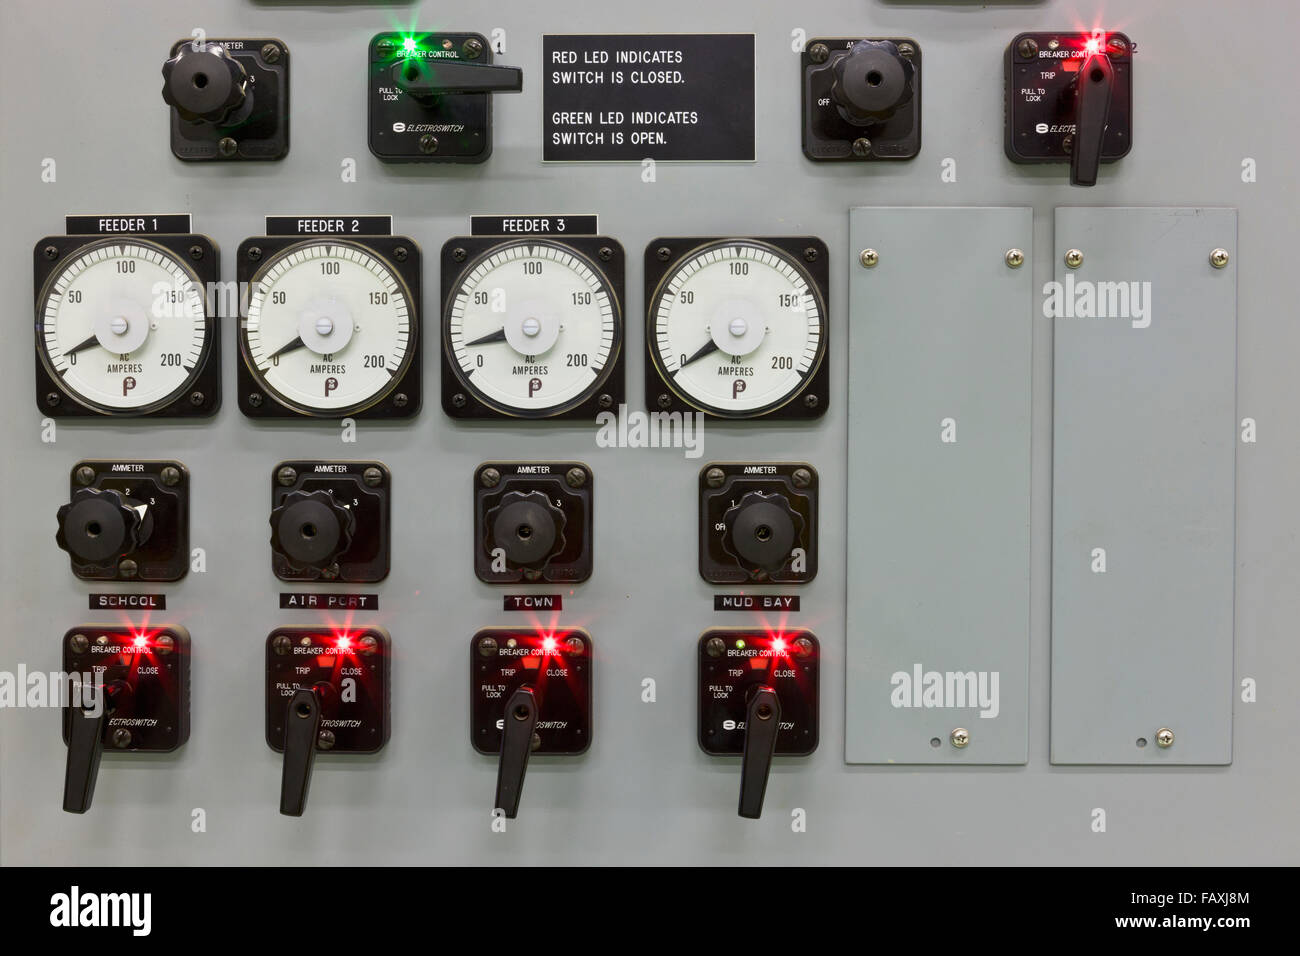 Indicator Lights And Dials On A Control Panel In An Electrical Power Plant Sand Point Southwestern Alaska USA Summer